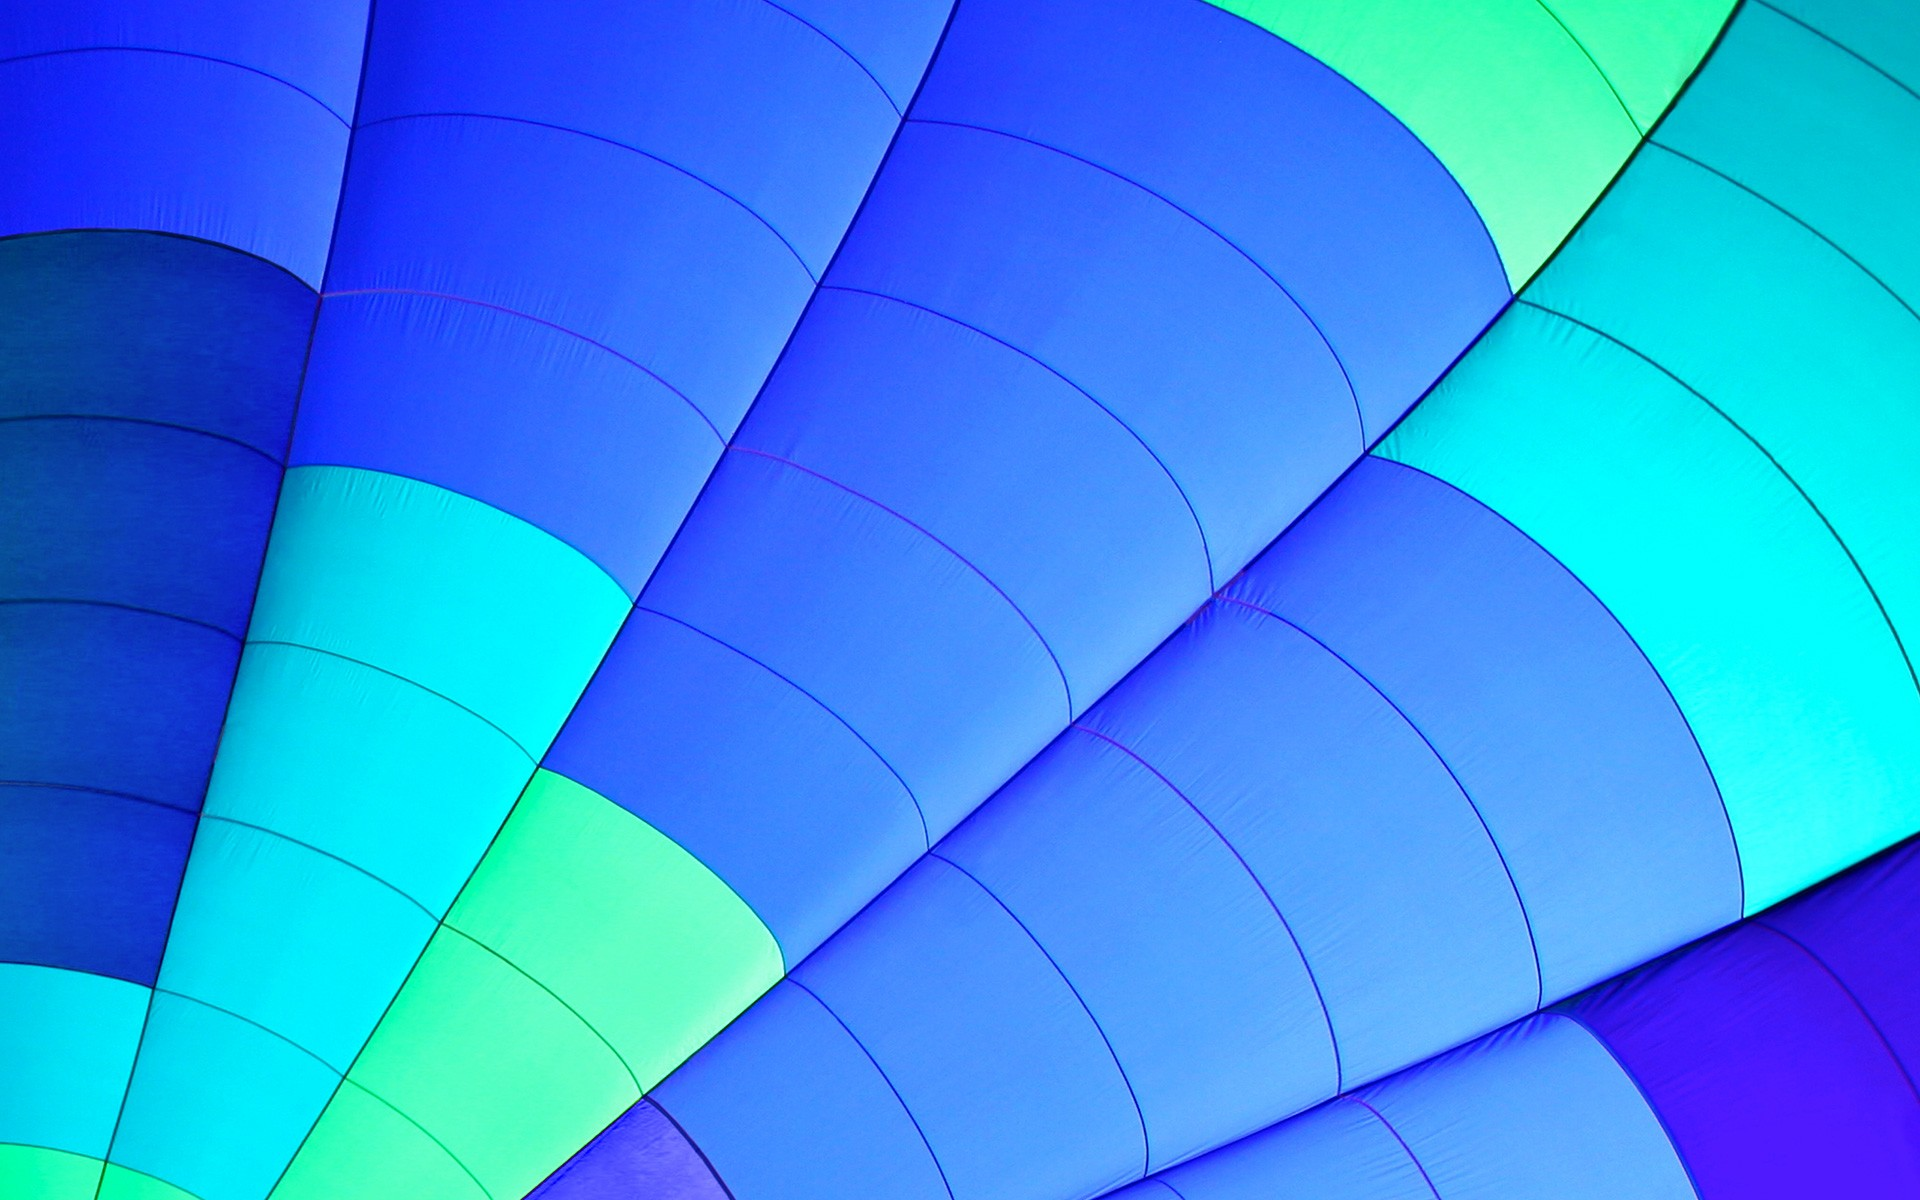 Globo de Windows 8 - 1920x1200